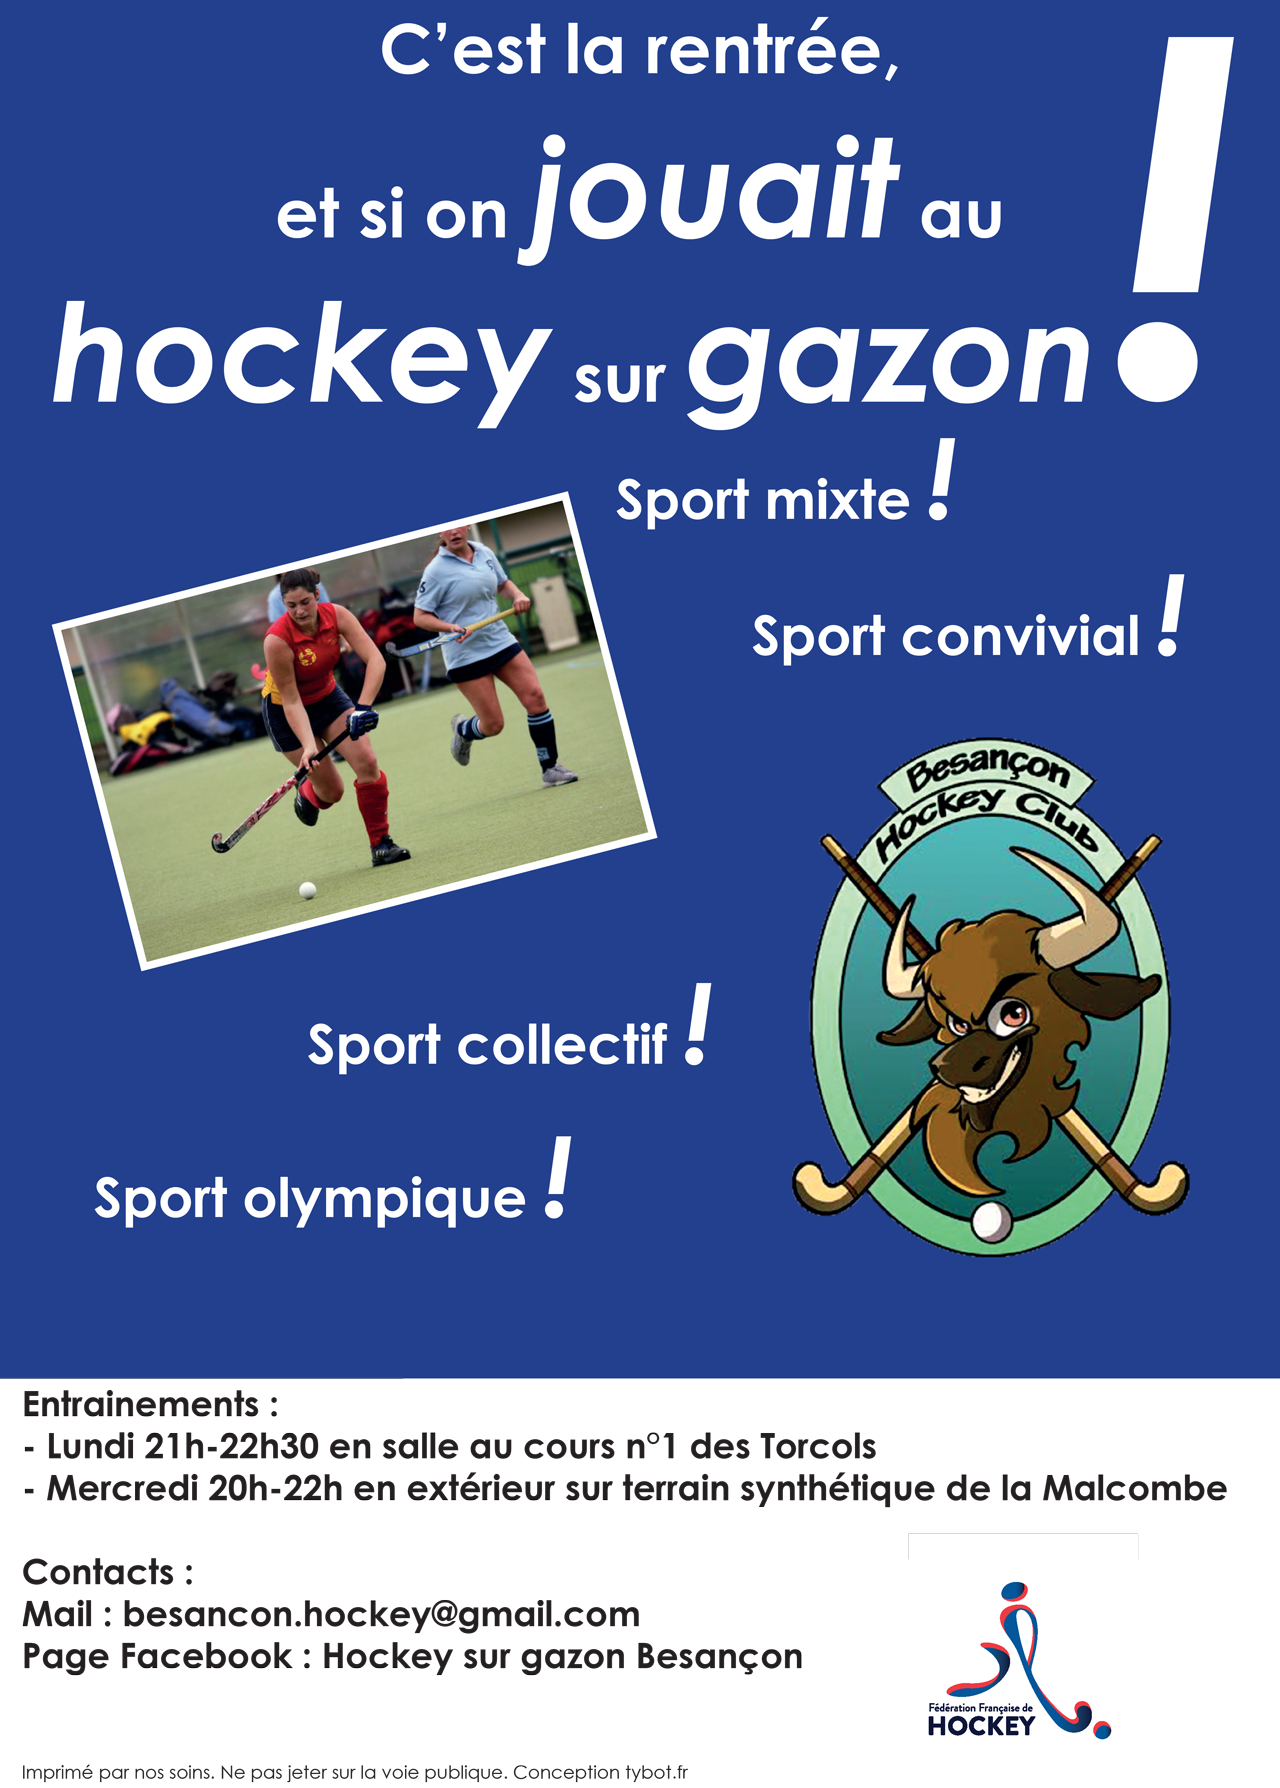 2015-09 - Affiche rentree Hockey sur gazon Besancon